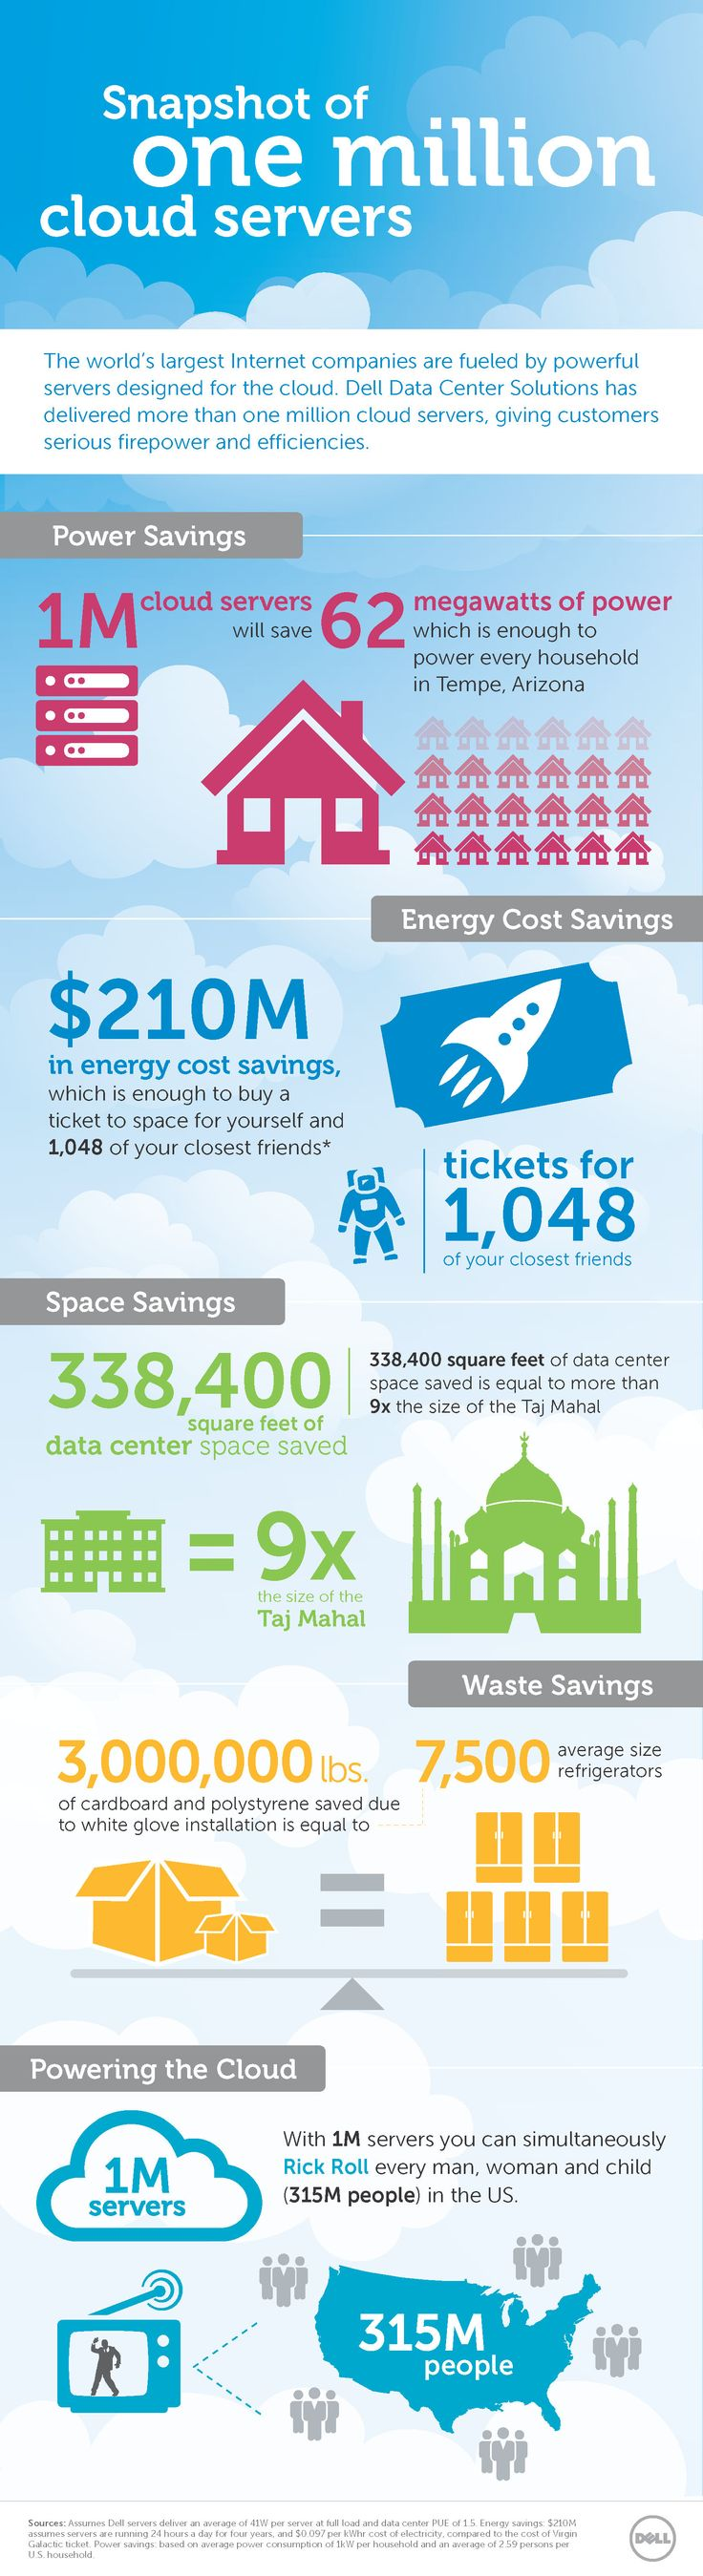 Dell DCS ships its 1 millionth server!   See how our cloud servers contribute to power savings, cost savings, space savings, and waste savings.